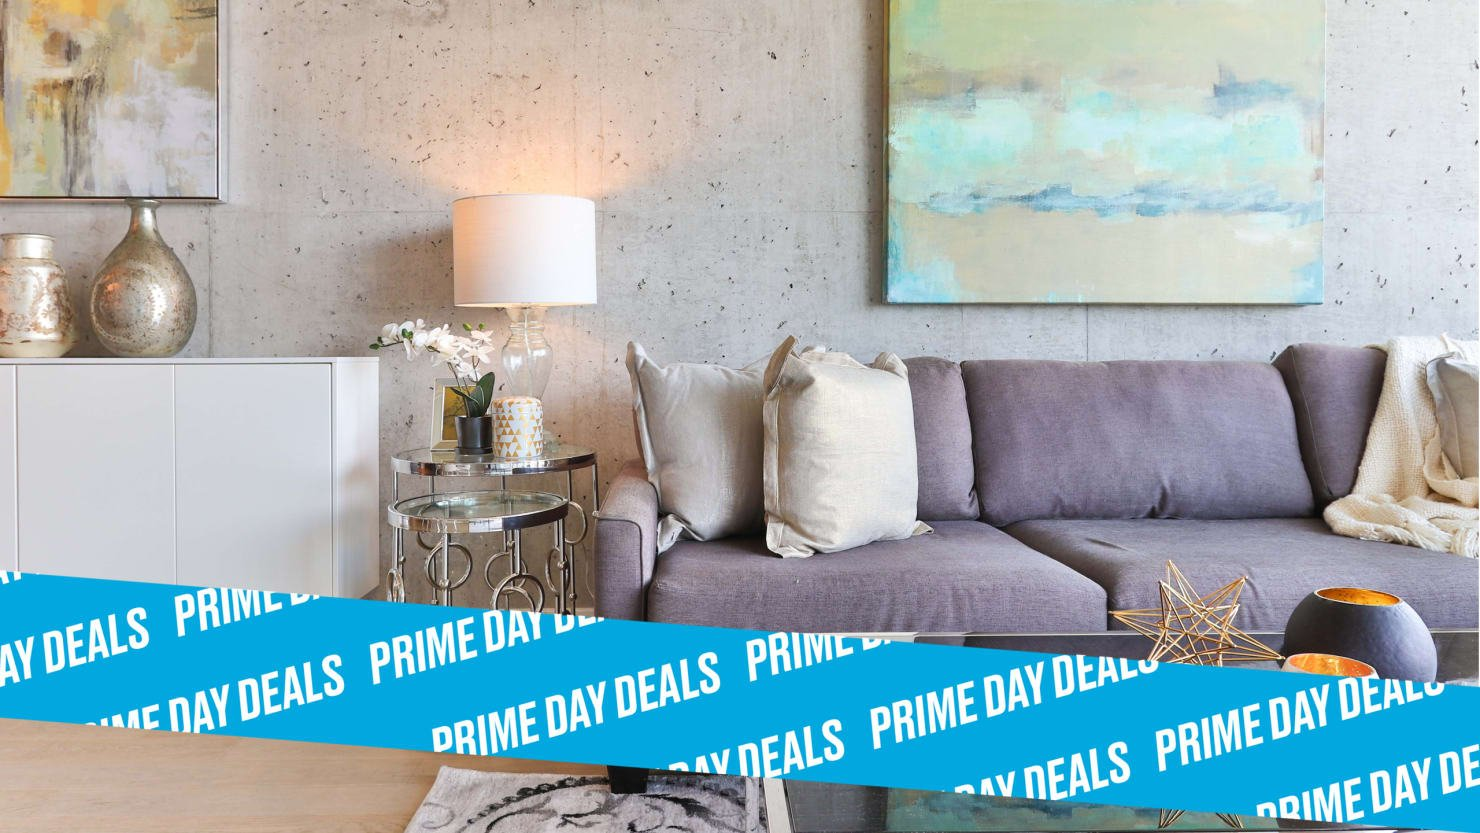 The Best Prime Day Home Goods Deals Going on Right Now